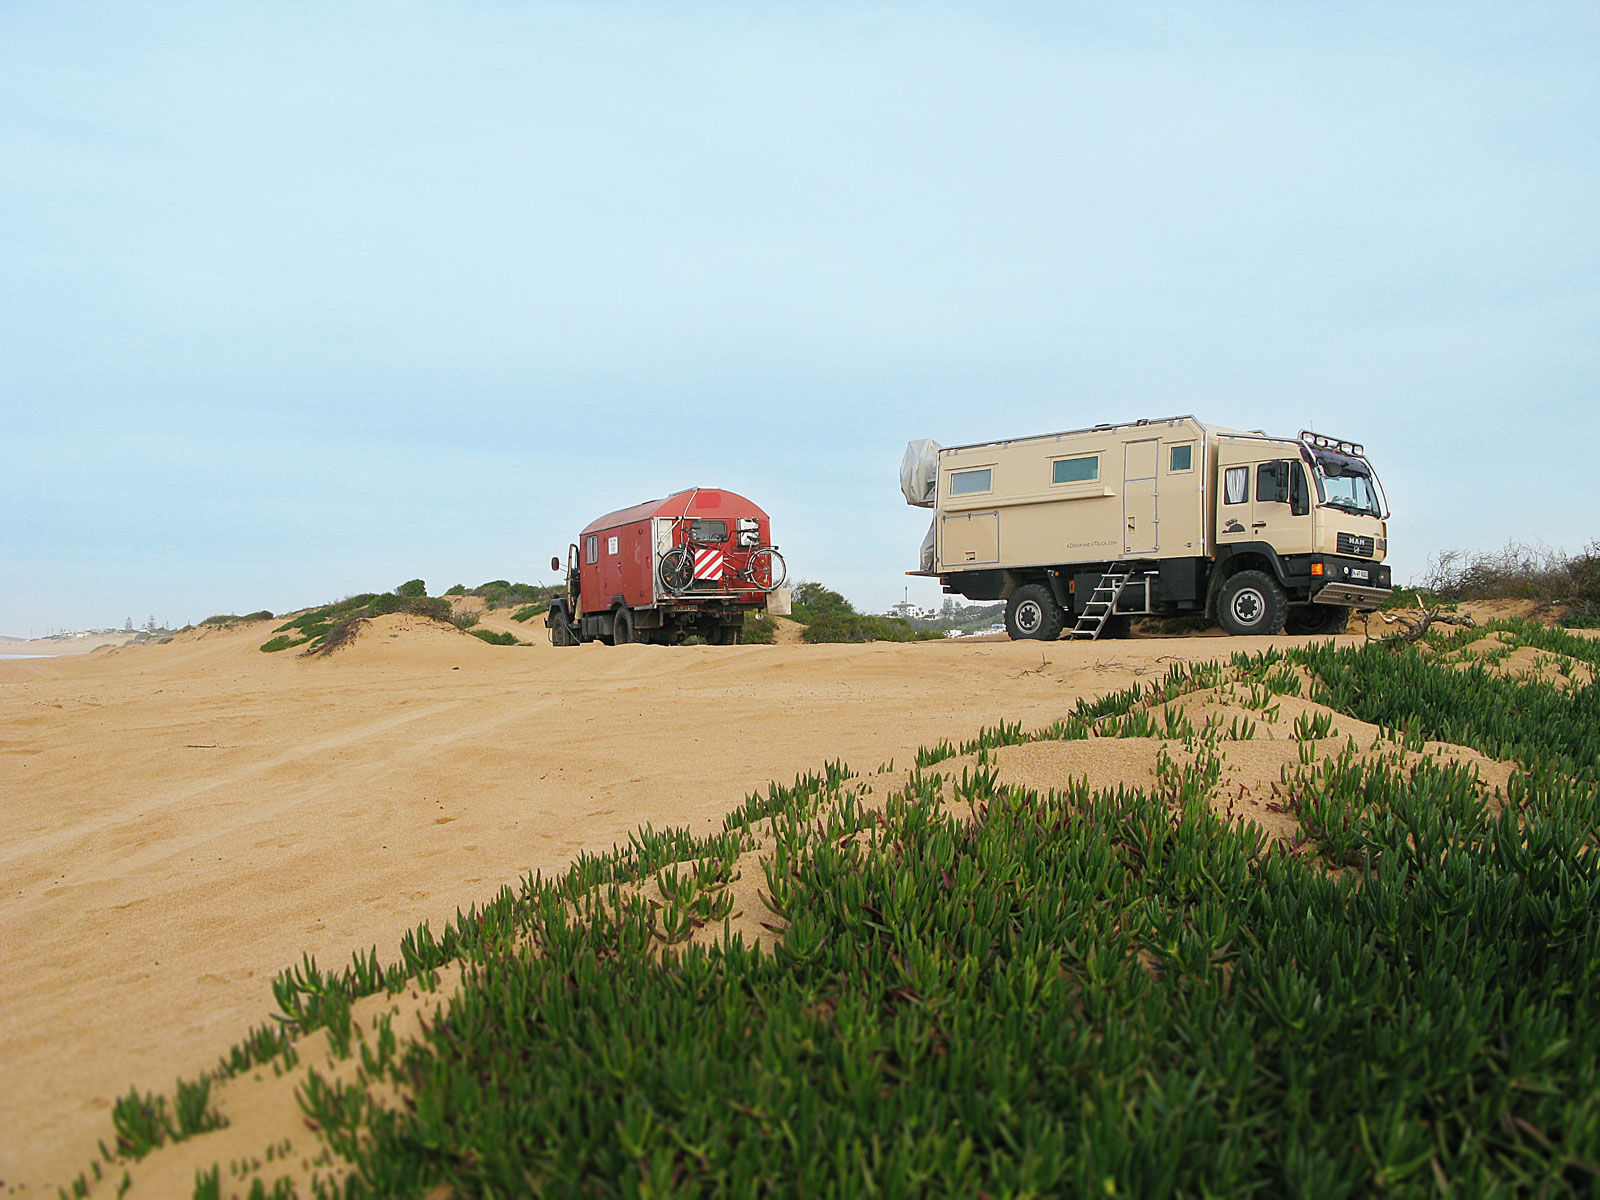 Two mobile homes park in the dunes on a beach in Morocco